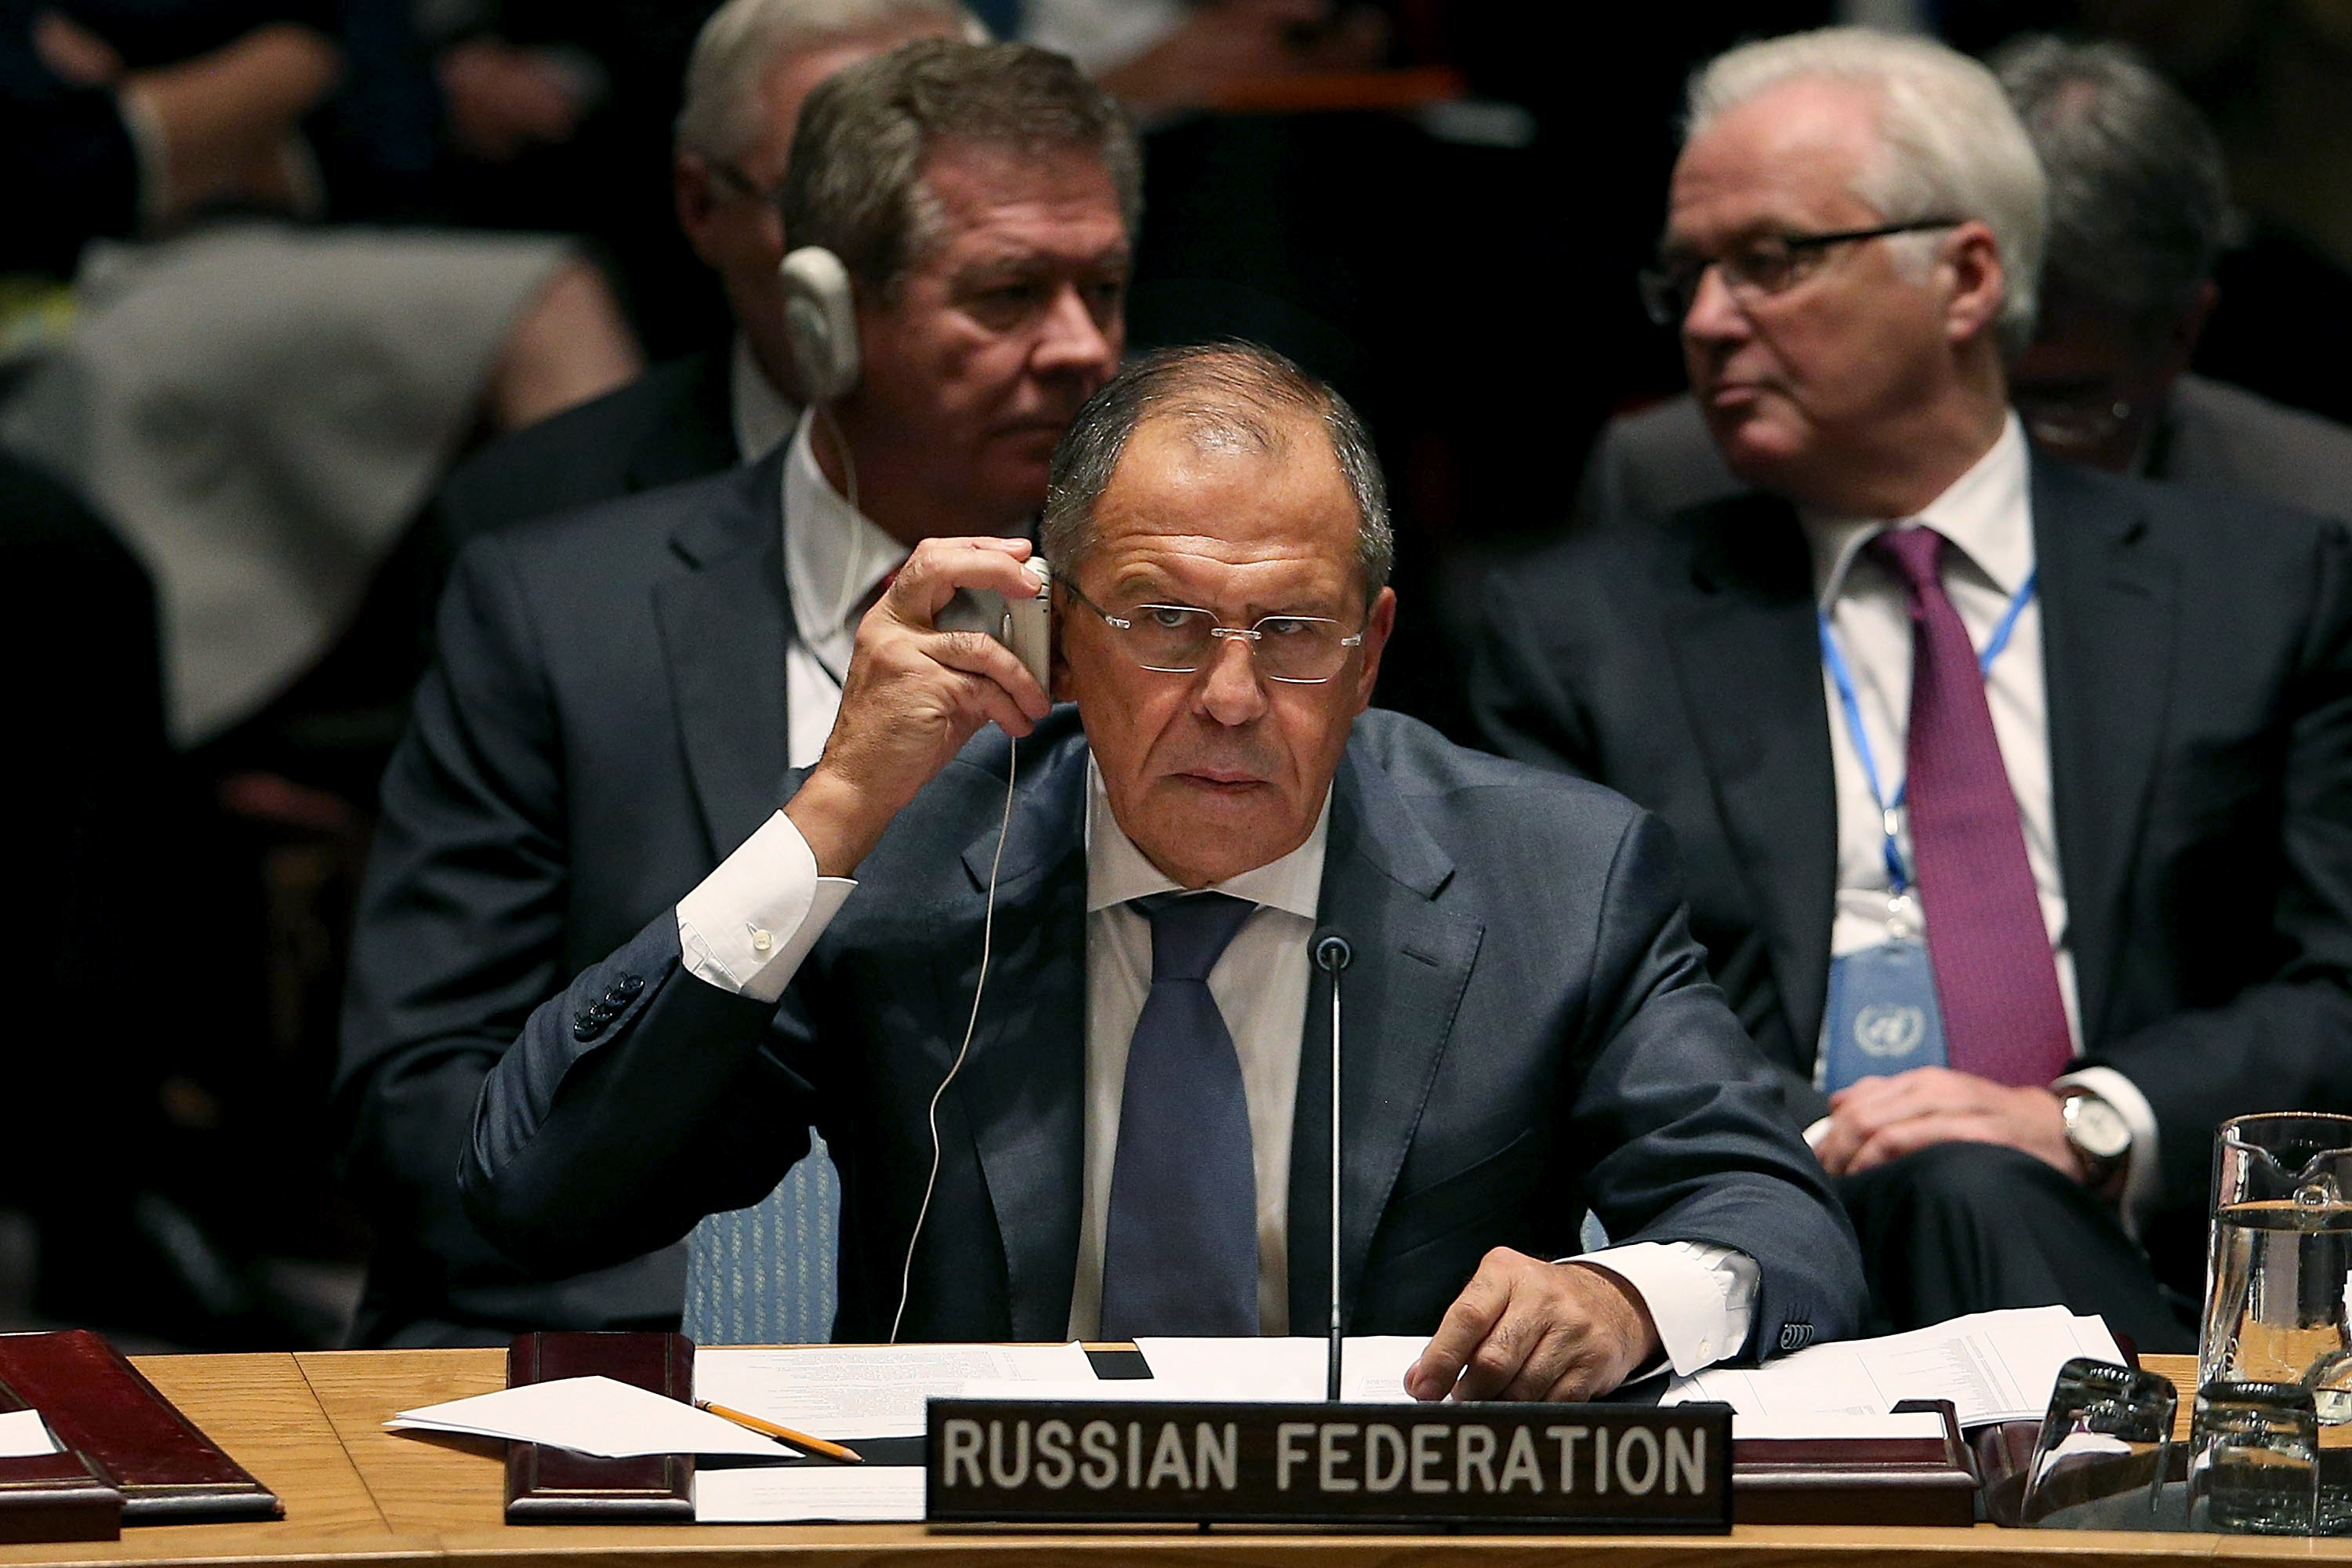 NEW YORK, NY - SEPTEMBER 24: Russian Foreign Minister Sergei Lavrov attends a Security Council meeting on global terrorism during the United Nations General Assembly on September 24, 2014 in New York City. World leaders, activists and protesters have converged on New York City for the annual UN event that brings together the global leaders for a week of meetings and conferences. (Photo by Spencer Platt/Getty Images)